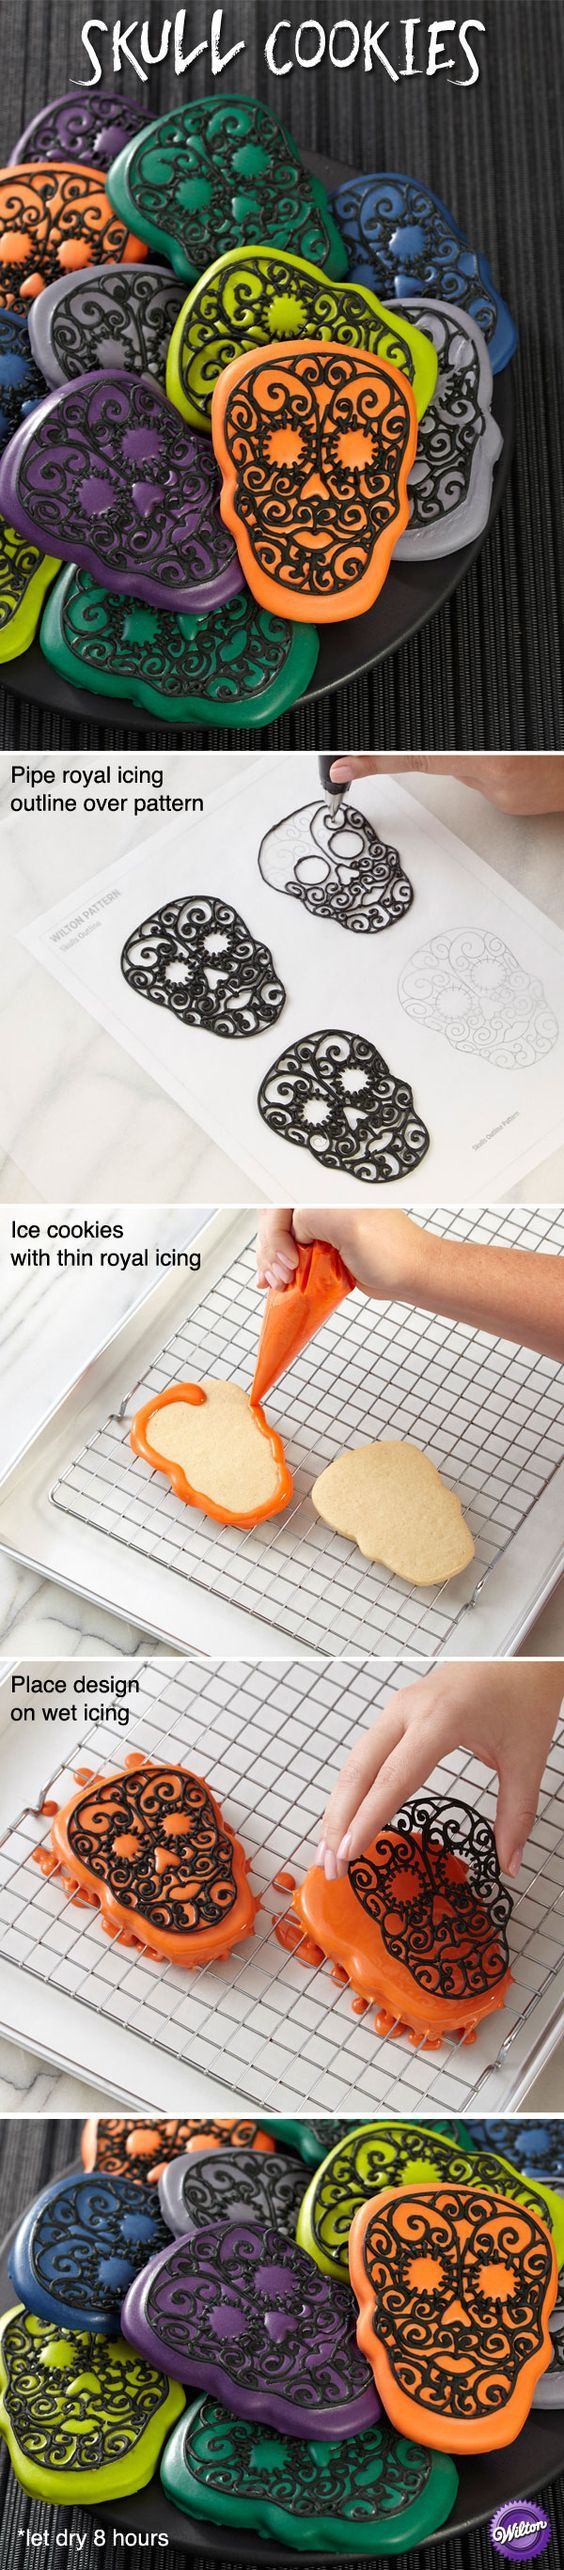 Celebrate Día de Muertos — the Day of the Dead —making traditional skull cookies in updated colors. The intense teal, blue, green, gray, purple and orange shades are easy to achieve using the Wilton Color Right Performance Color System.: